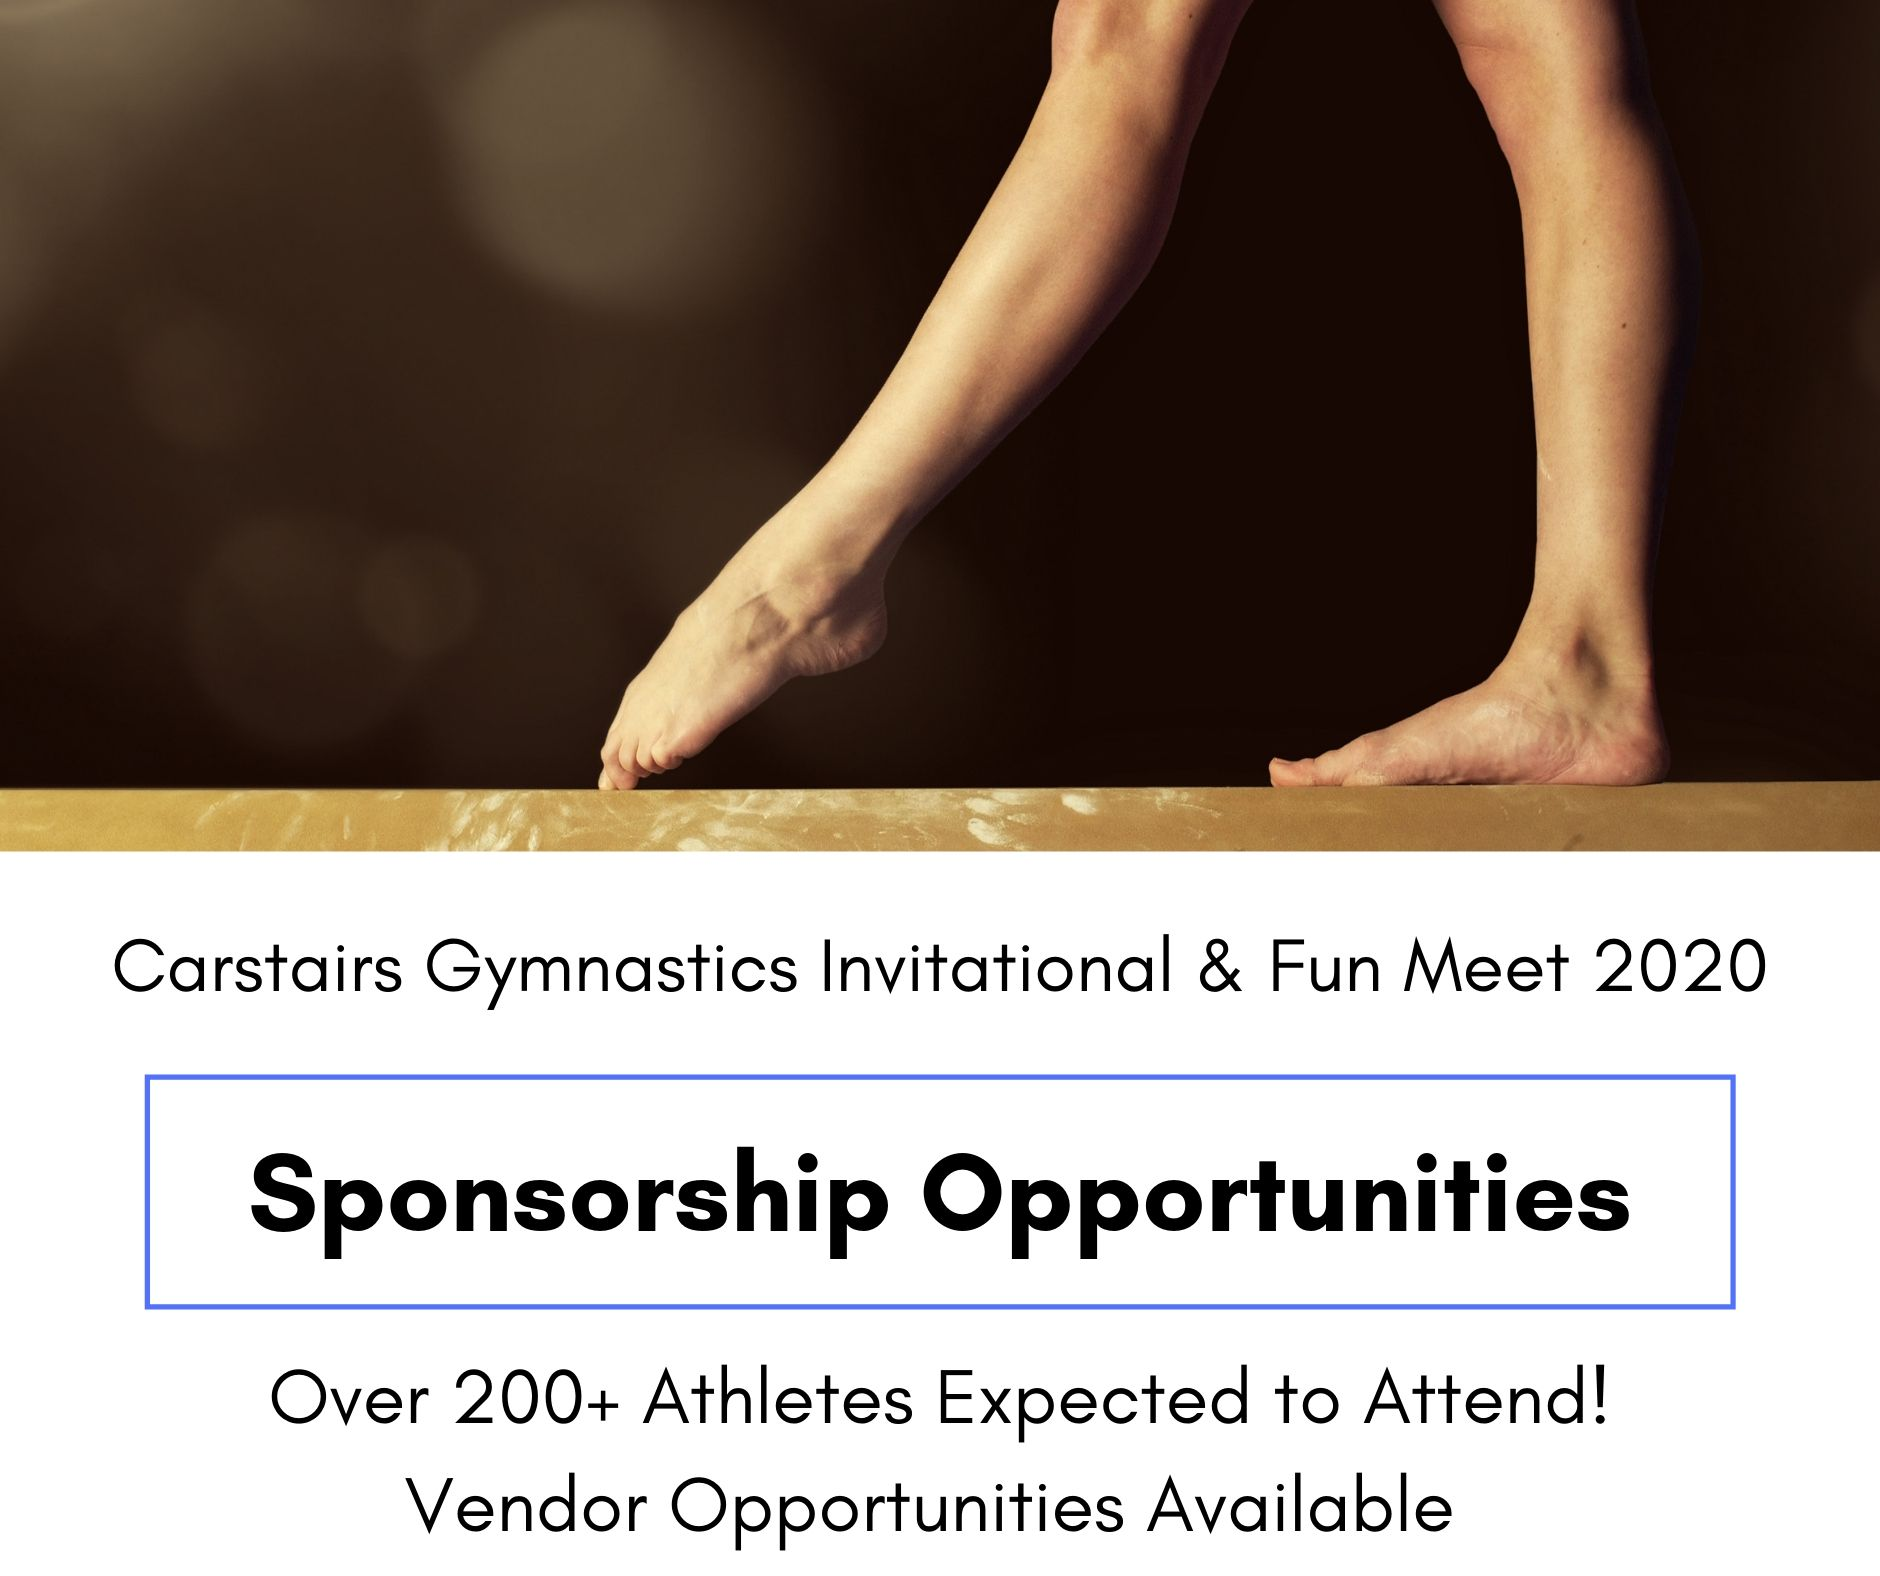 2020 Carstairs Gymnastics Invitational and Fun Meet -